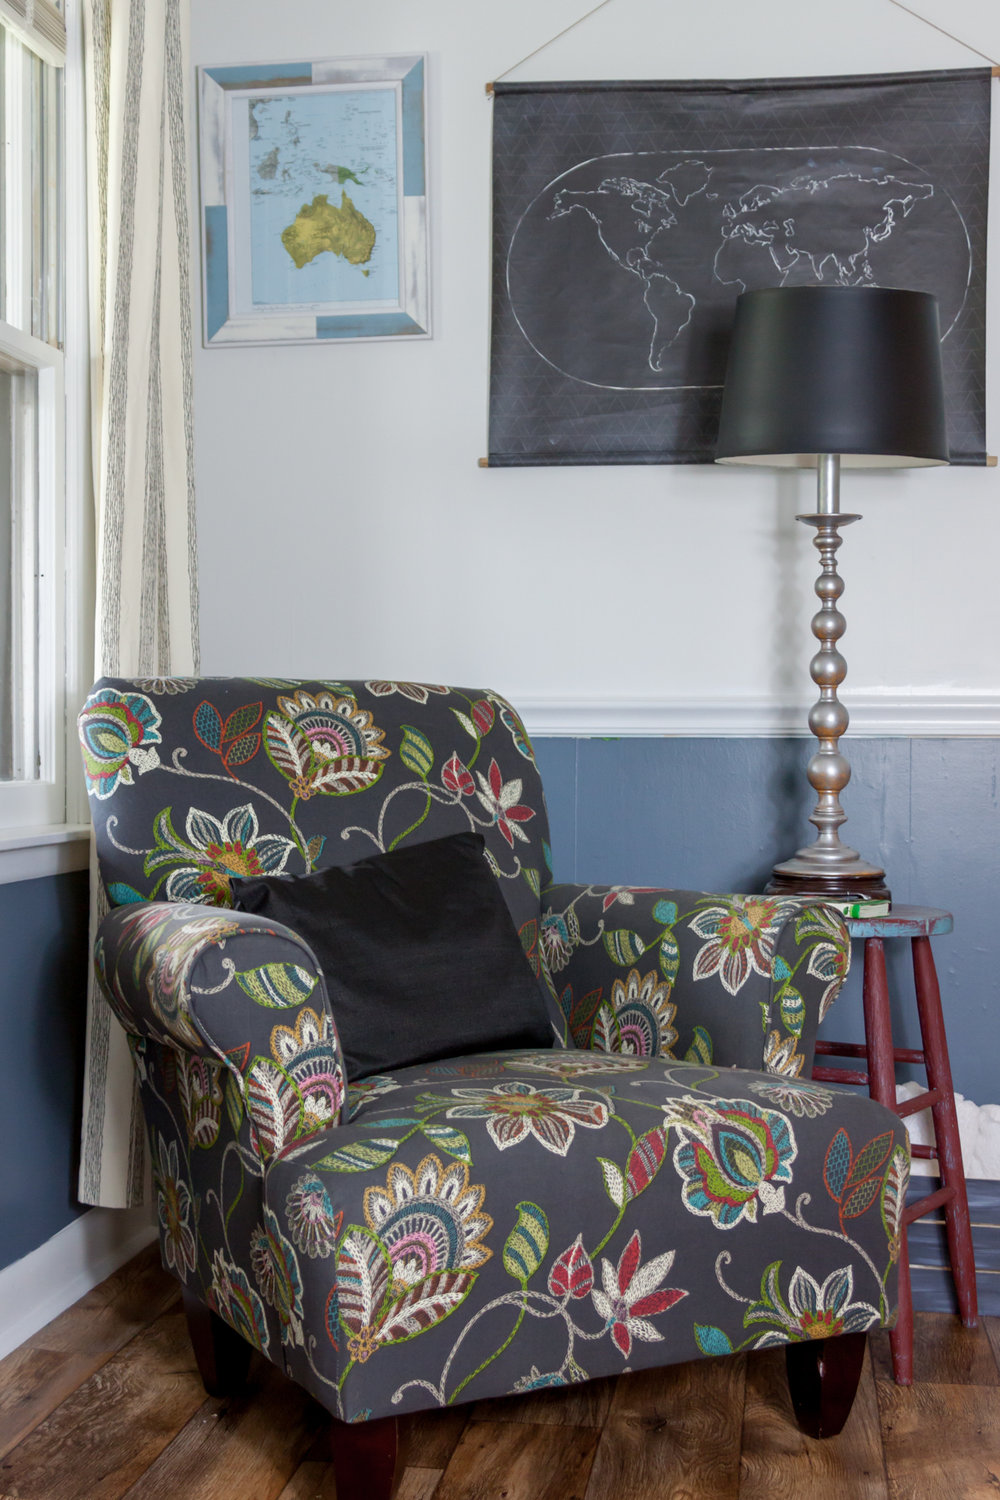 bright hill cumberland room chair.jpg